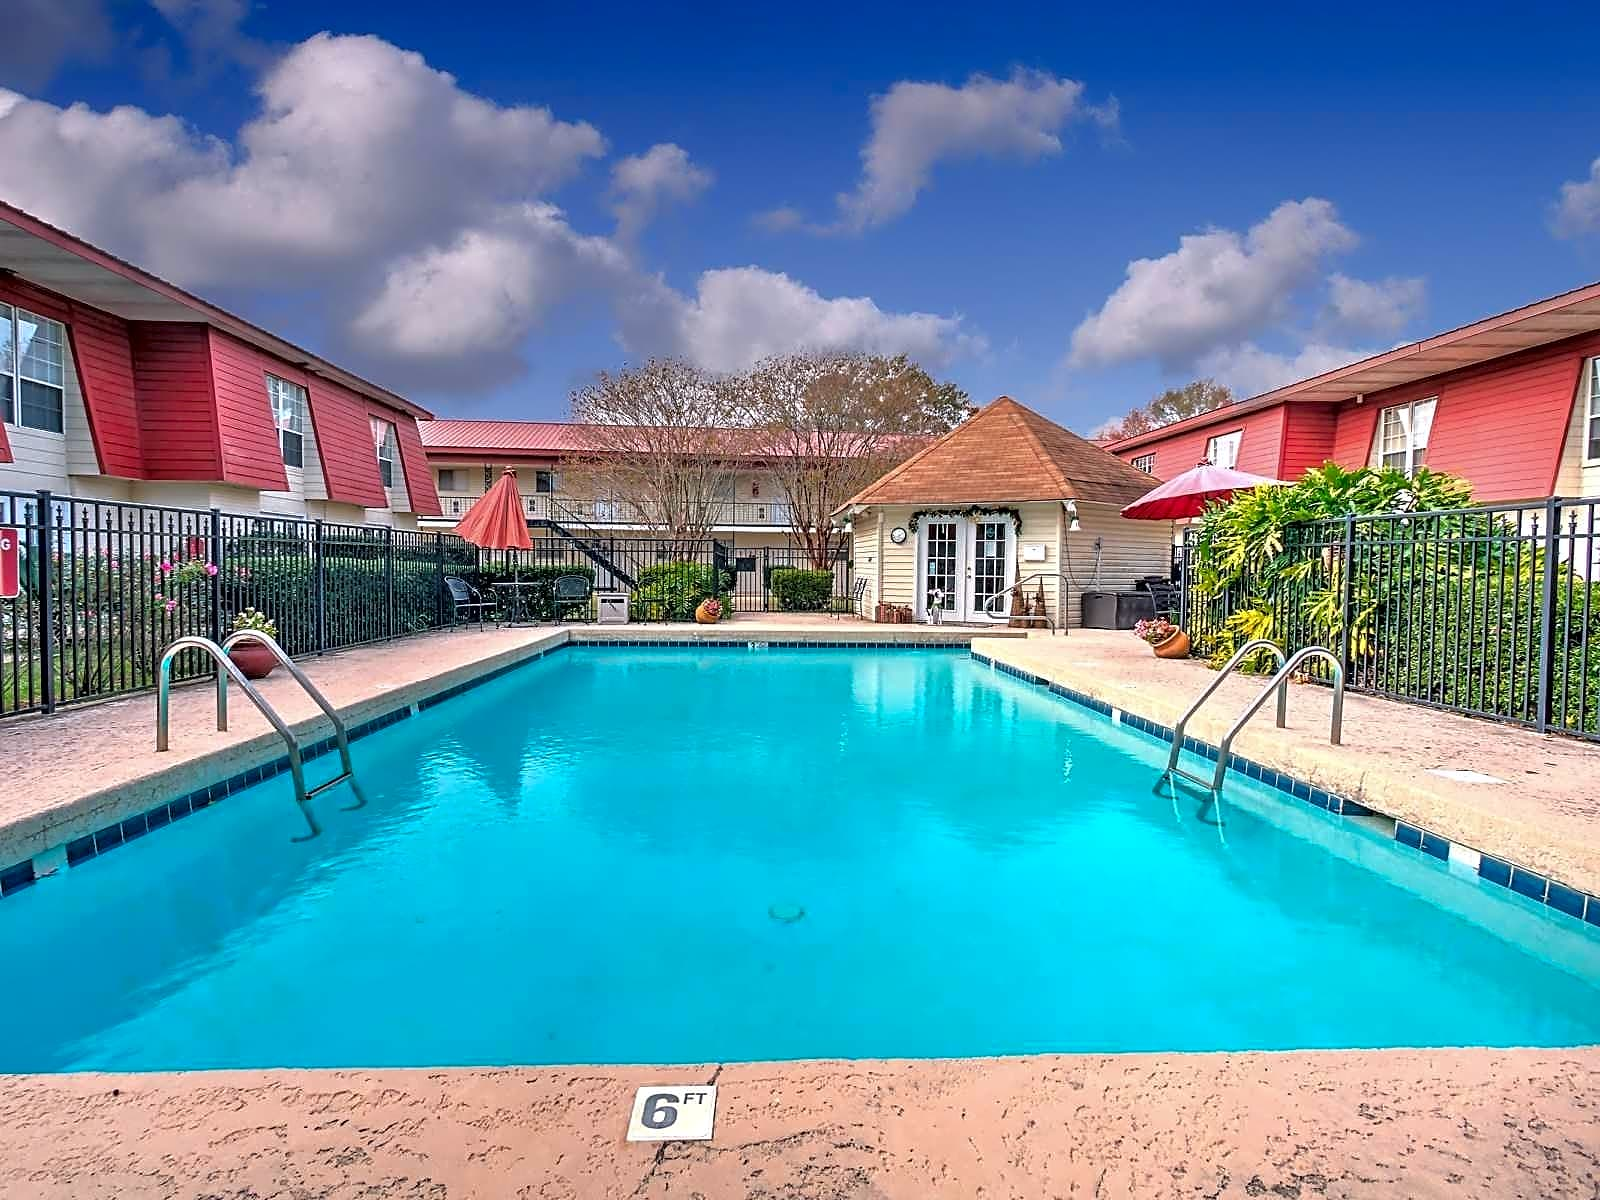 Apartments Near Day Spa Career College Chateau Tourraine for Day Spa Career College Students in Ocean Springs, MS